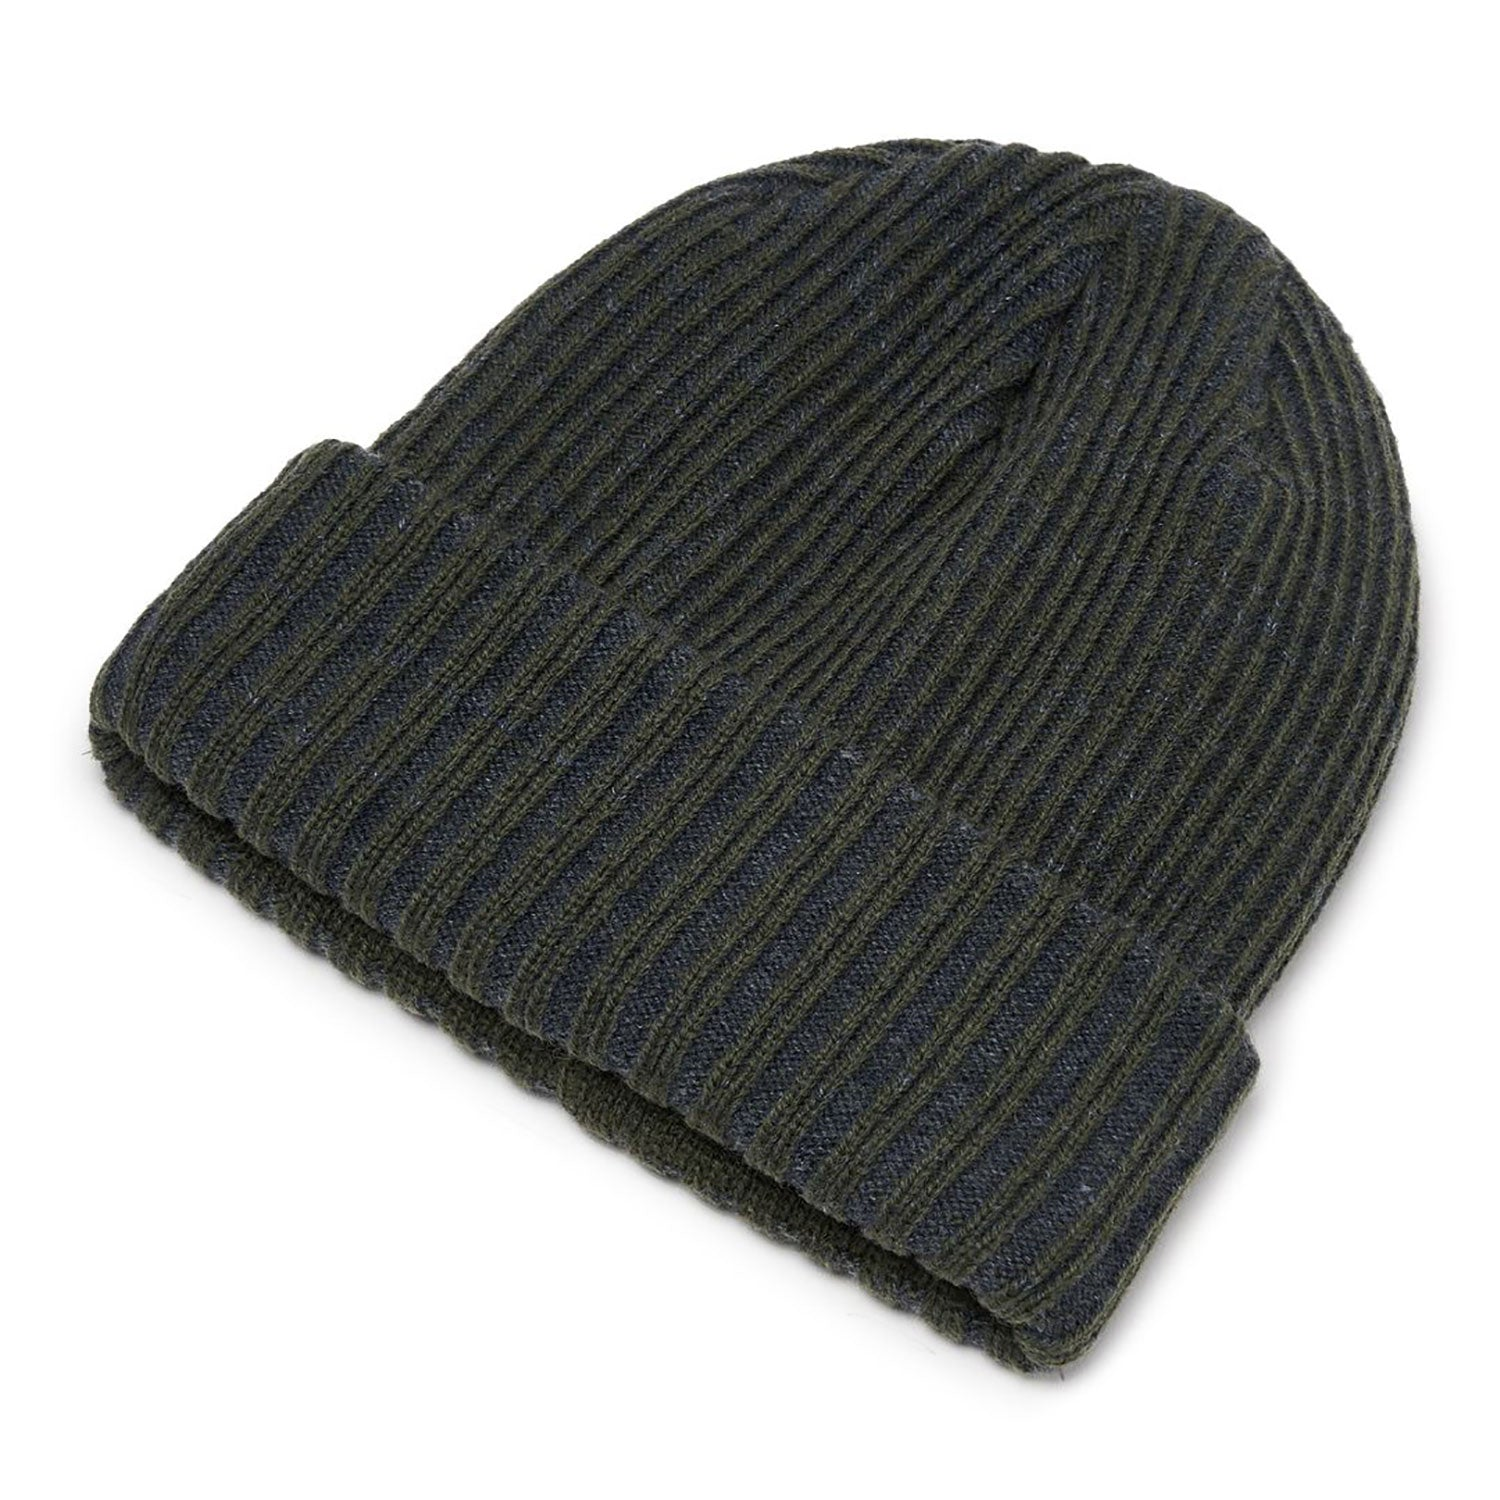 Boy's Accessories Creative Boys Timberland Beanie Winter Hat Size M Suit 1-2 Yrs Highly Polished